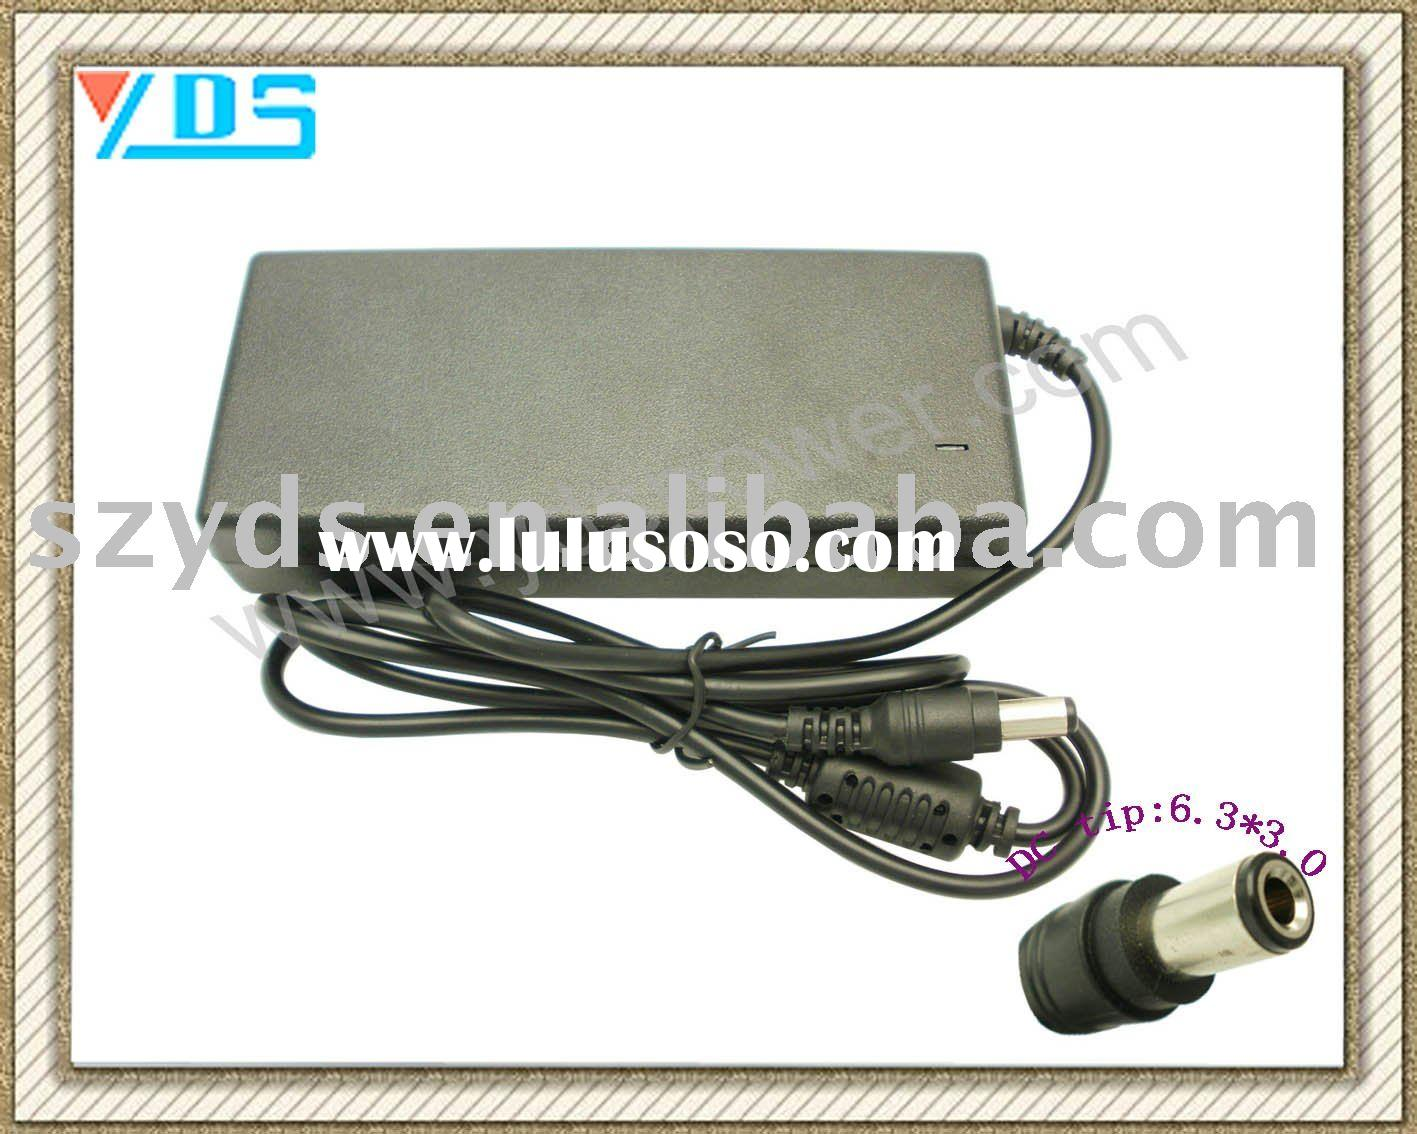 90W laptop power supply for TOSHIBA (15V 6A)